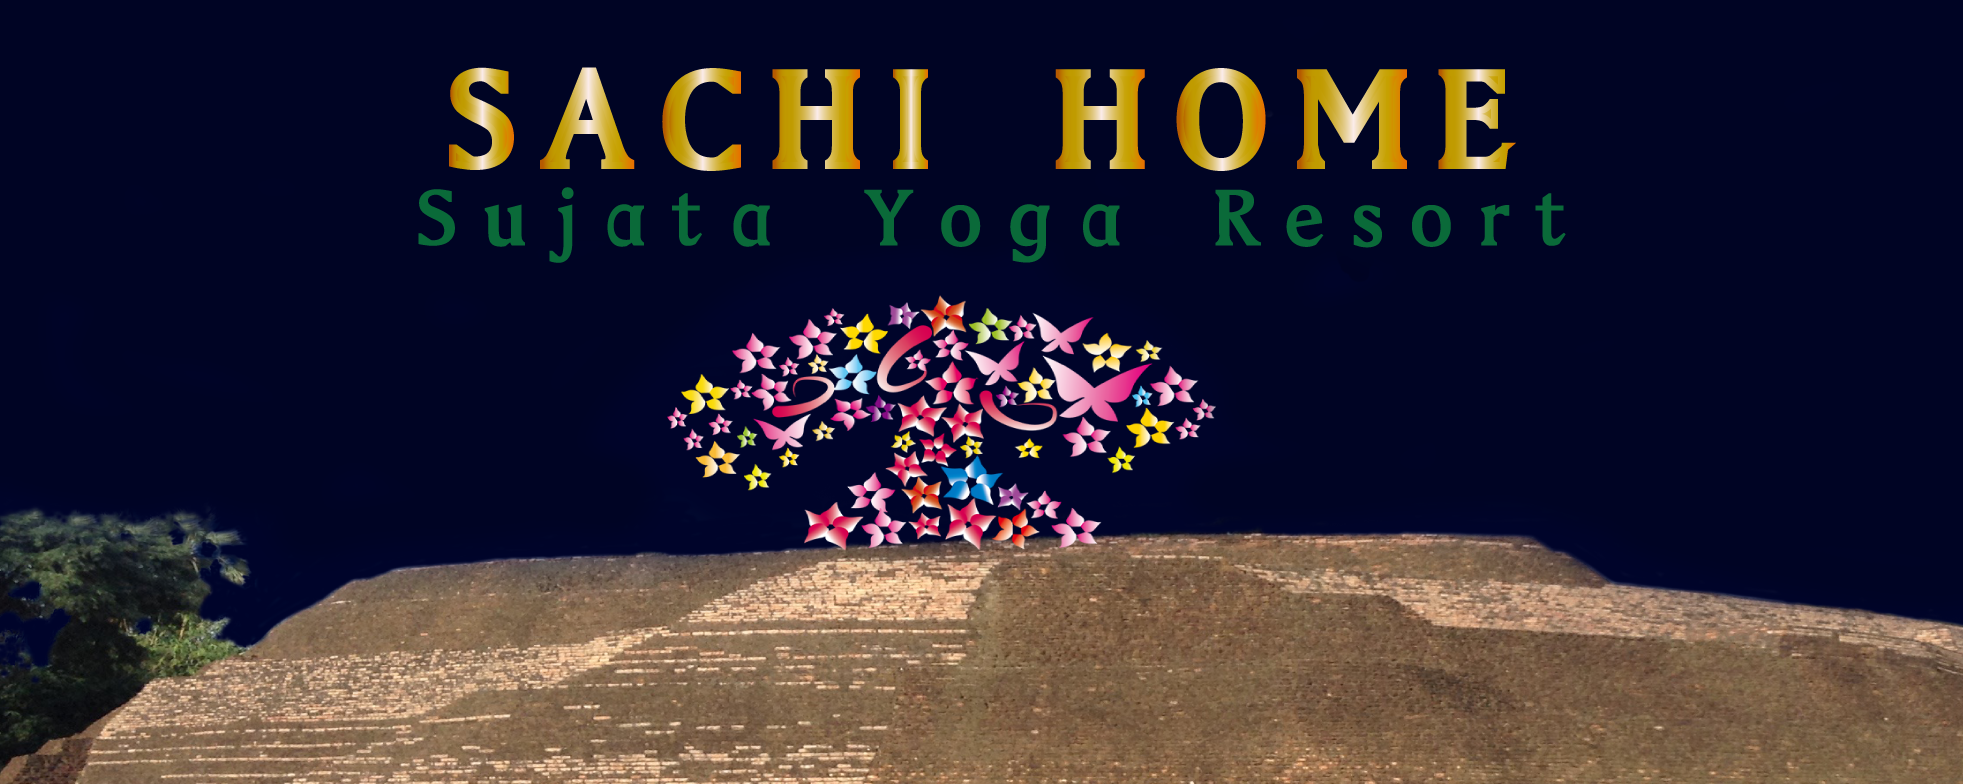 SACHI HOME – Sujata Yoga Resort